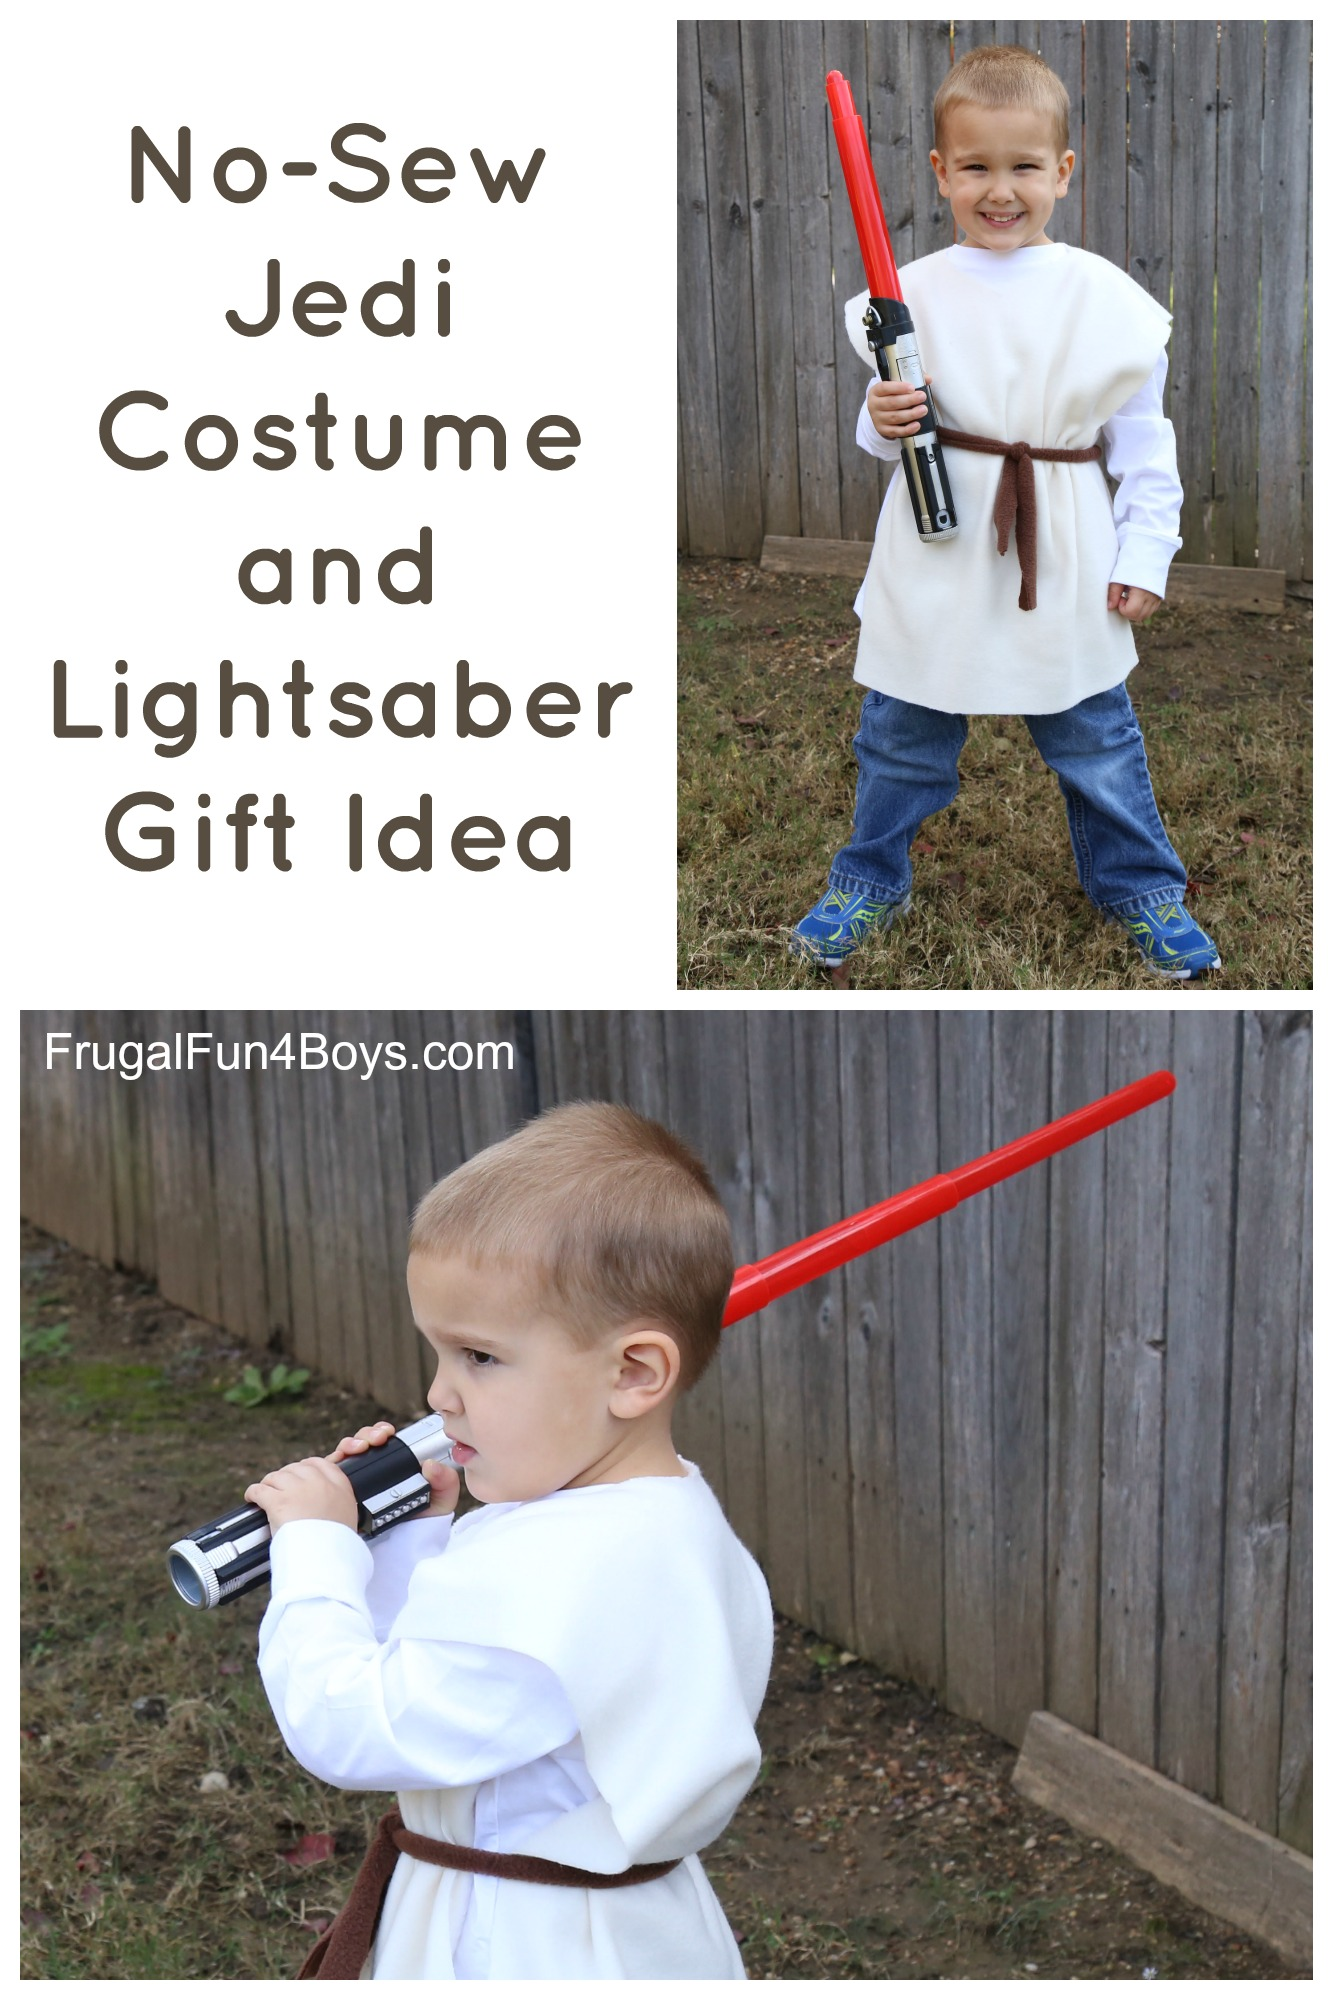 Star Wars Lightsaber and 10 Minute No-Sew Jedi Costume Gift Idea